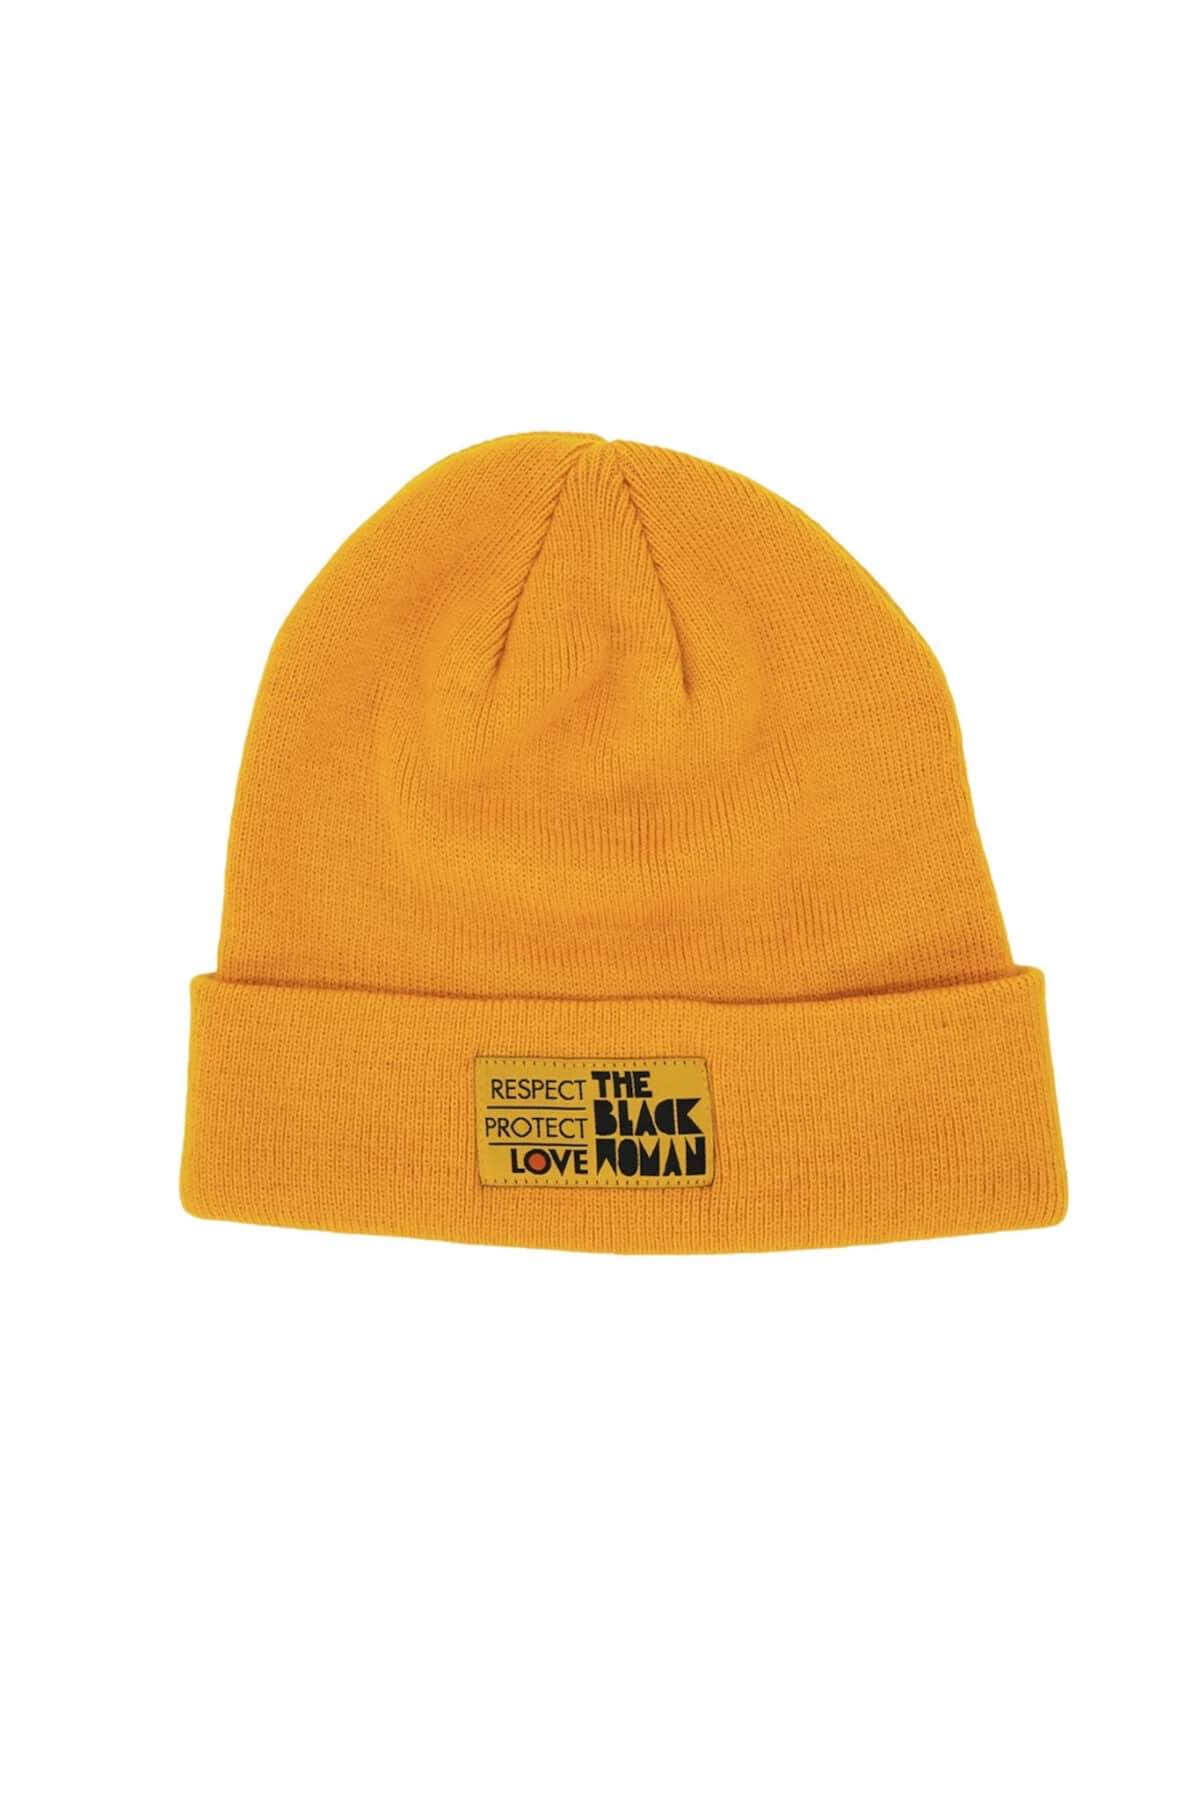 Respect Protect Love The Black Woman® Yellow Unisex Beanie Hat HGC Apparel